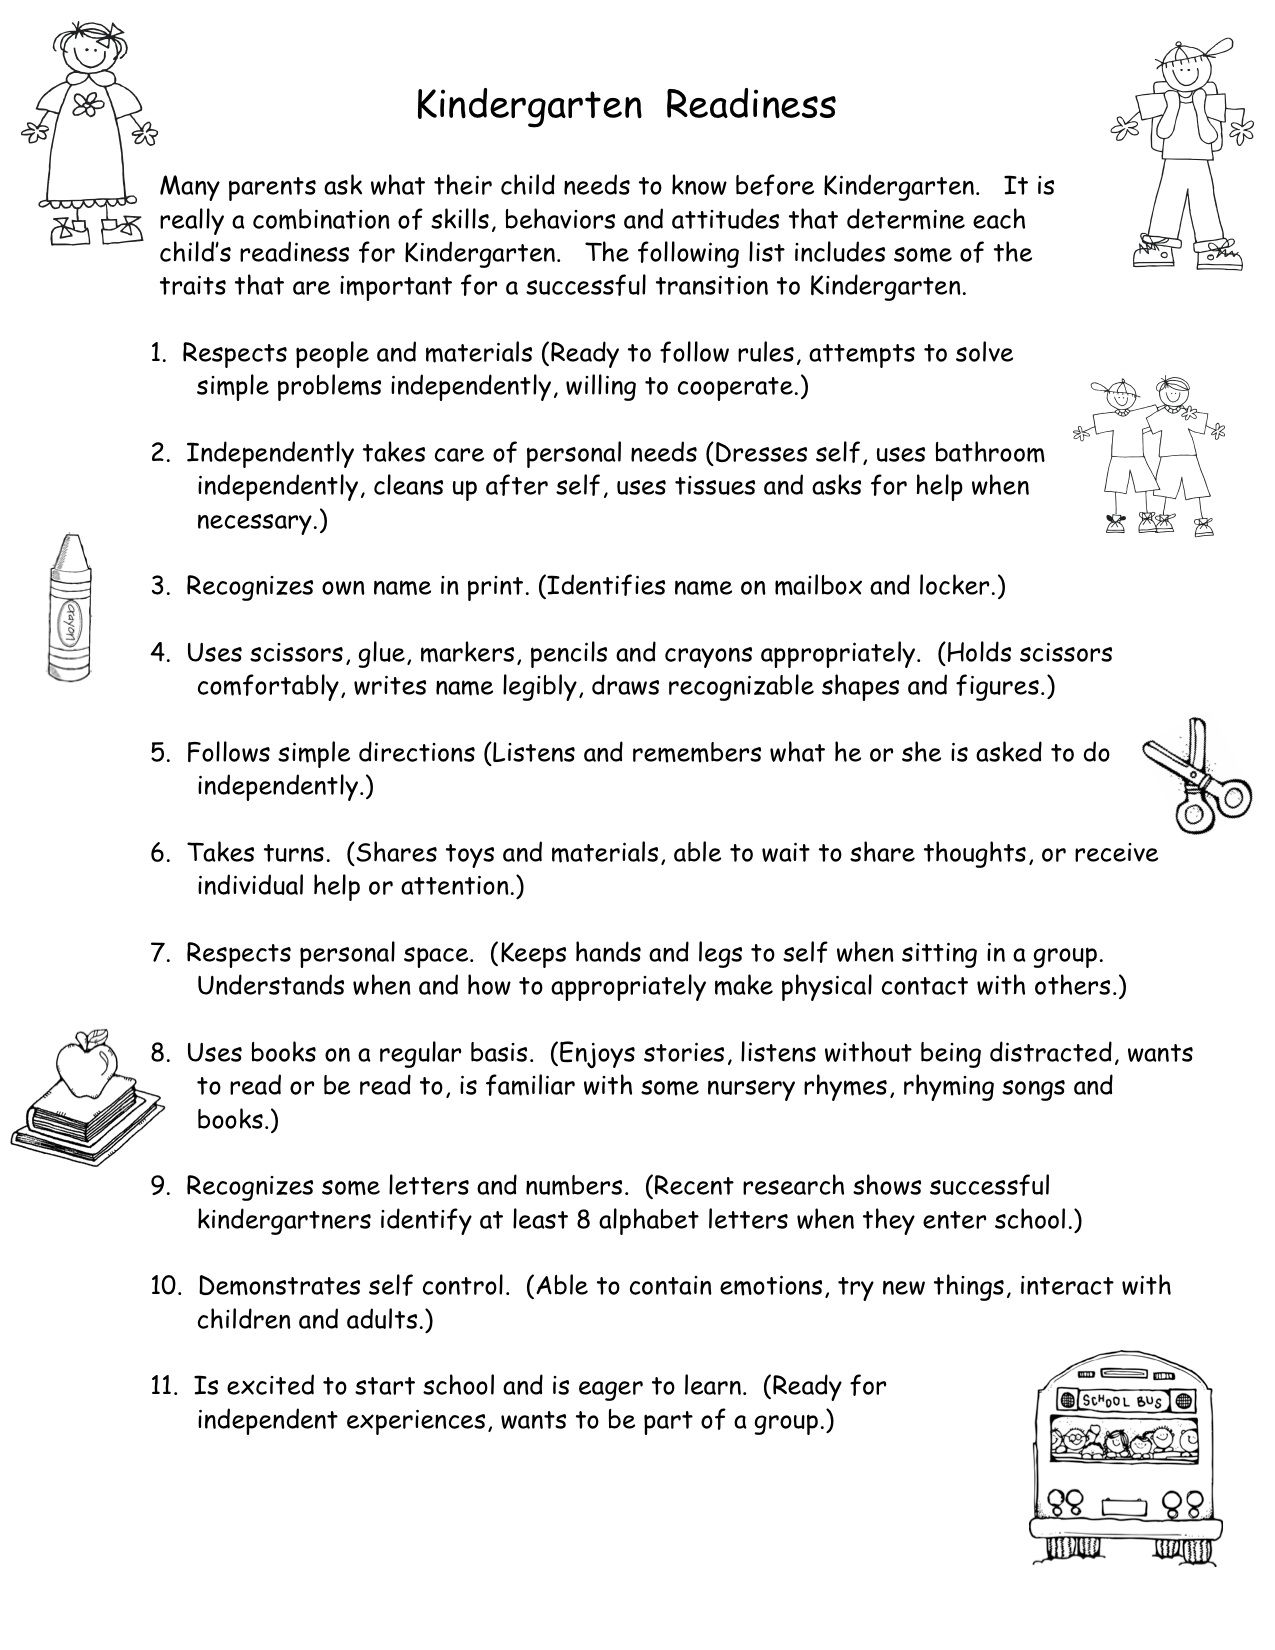 Preparing for kindergarten: what should be able to child